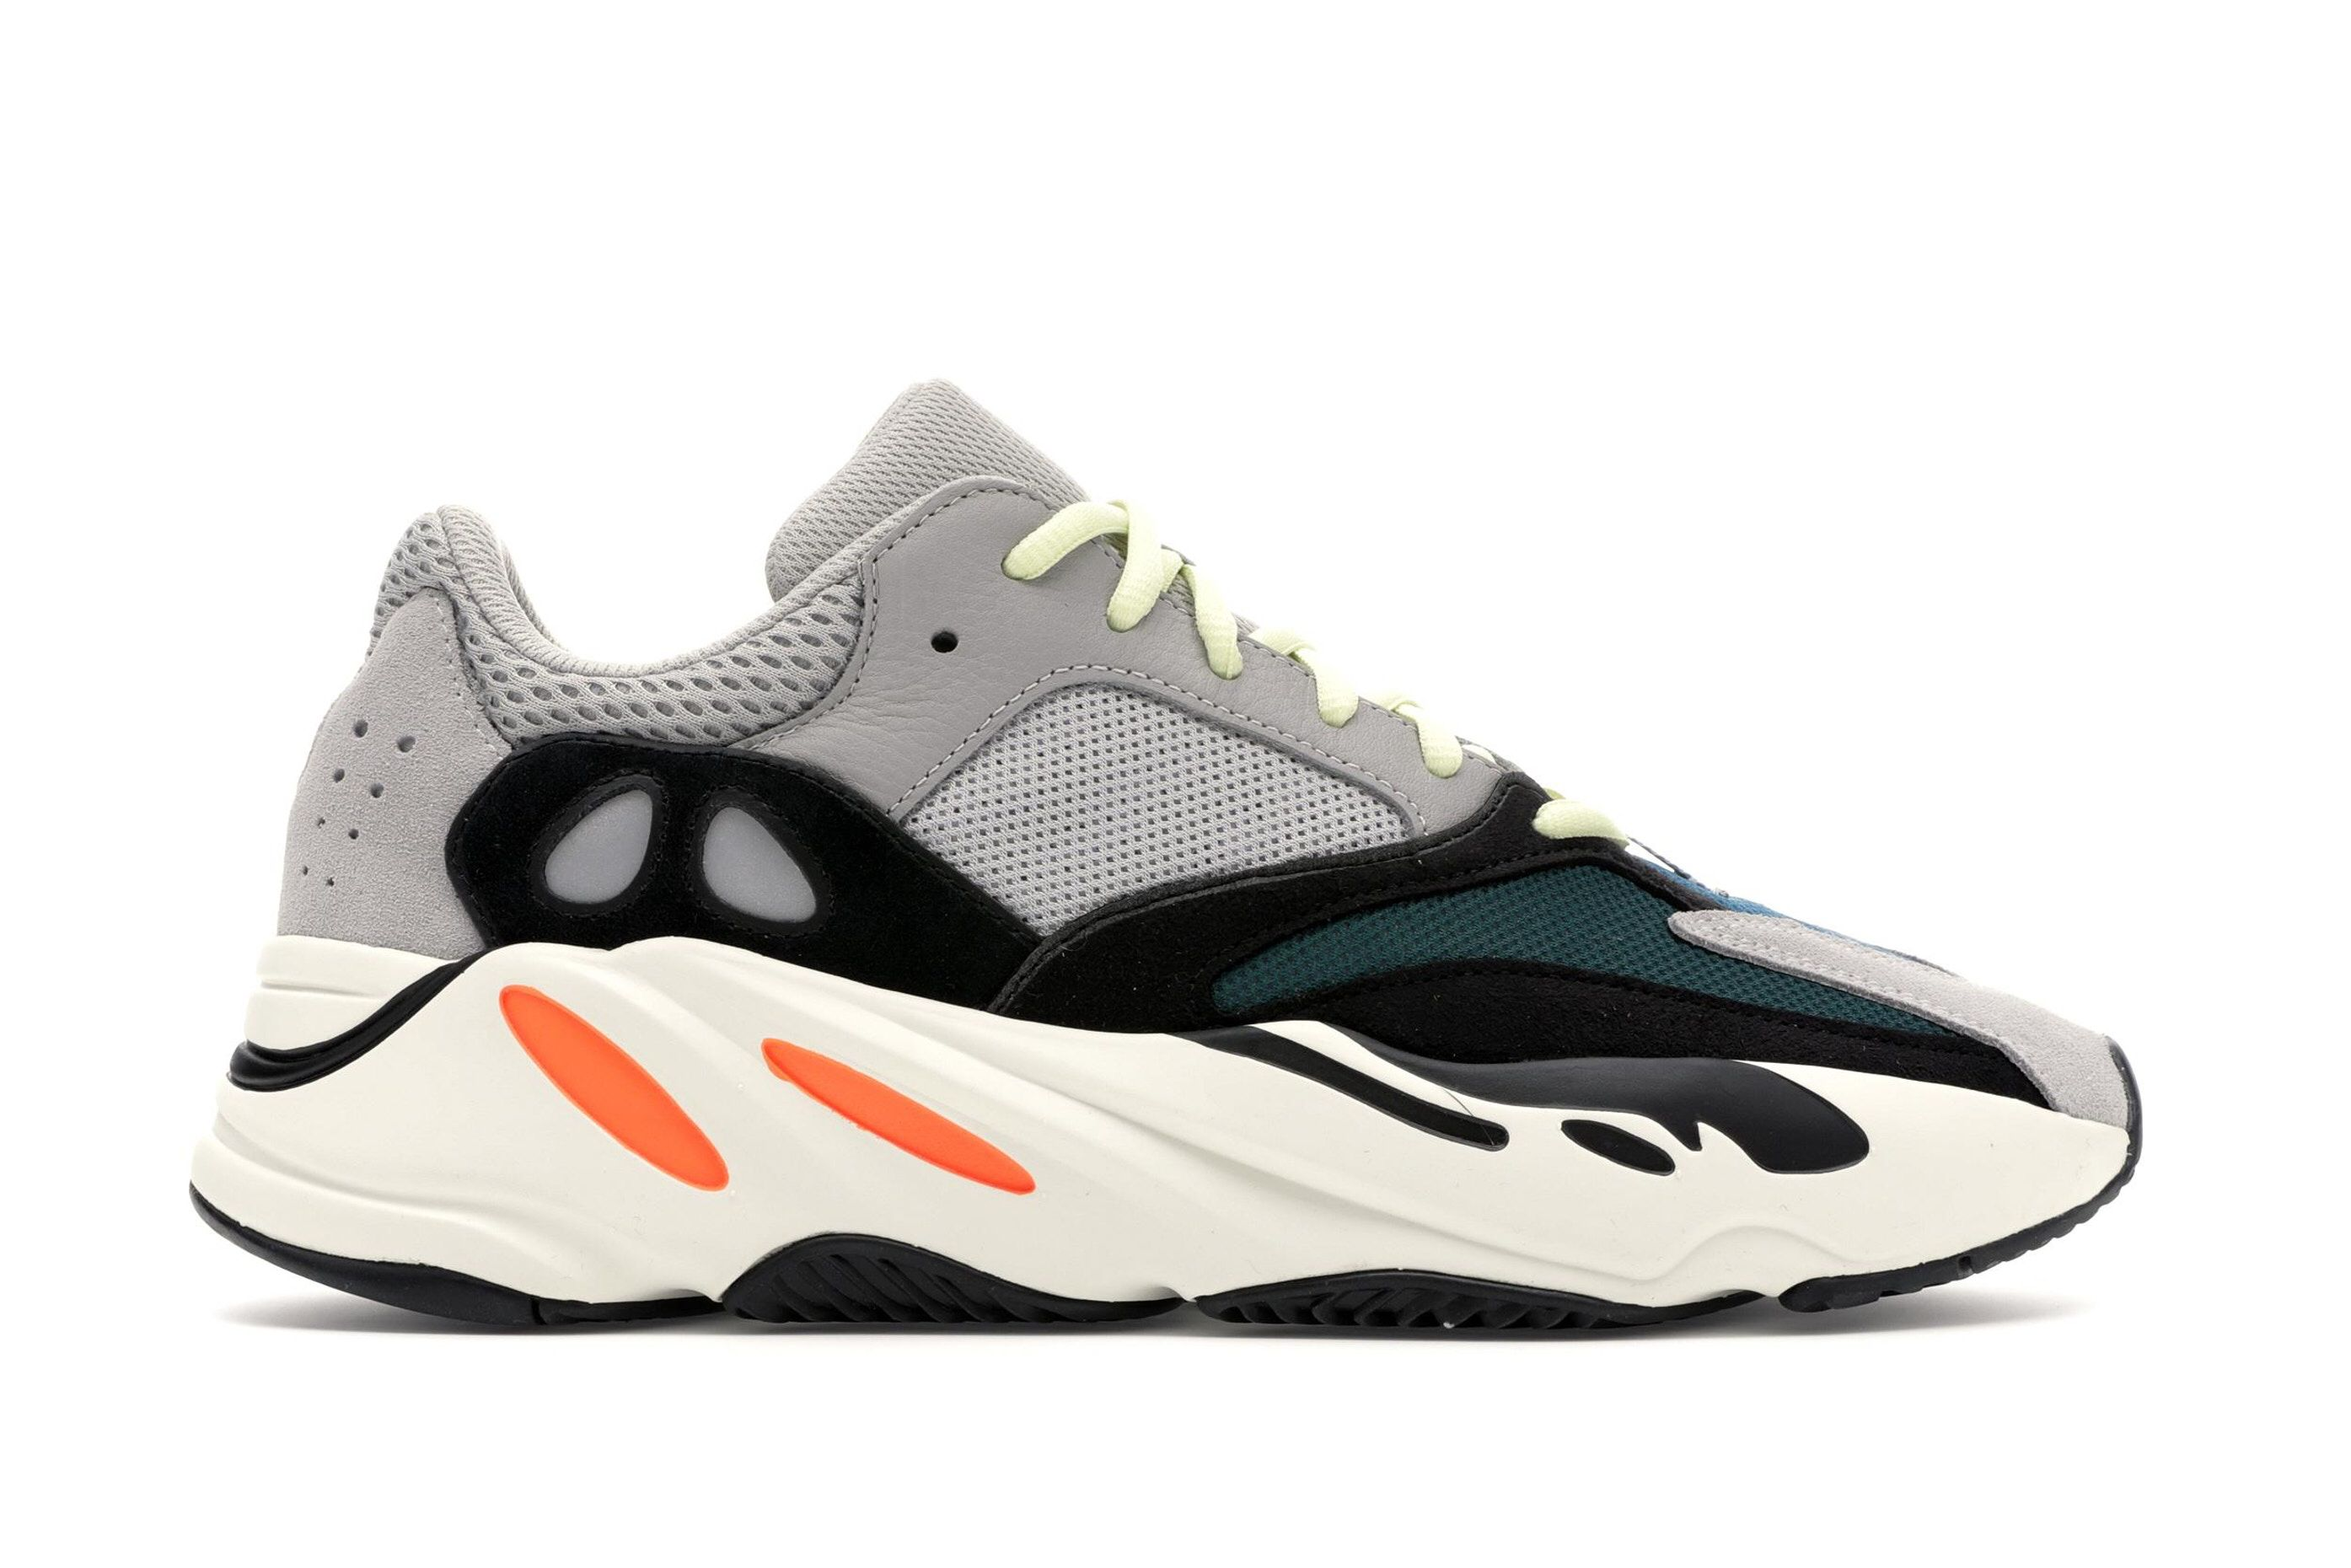 270f009cc Check out the adidas Yeezy Wave Runner 700 Solid Grey available on StockX